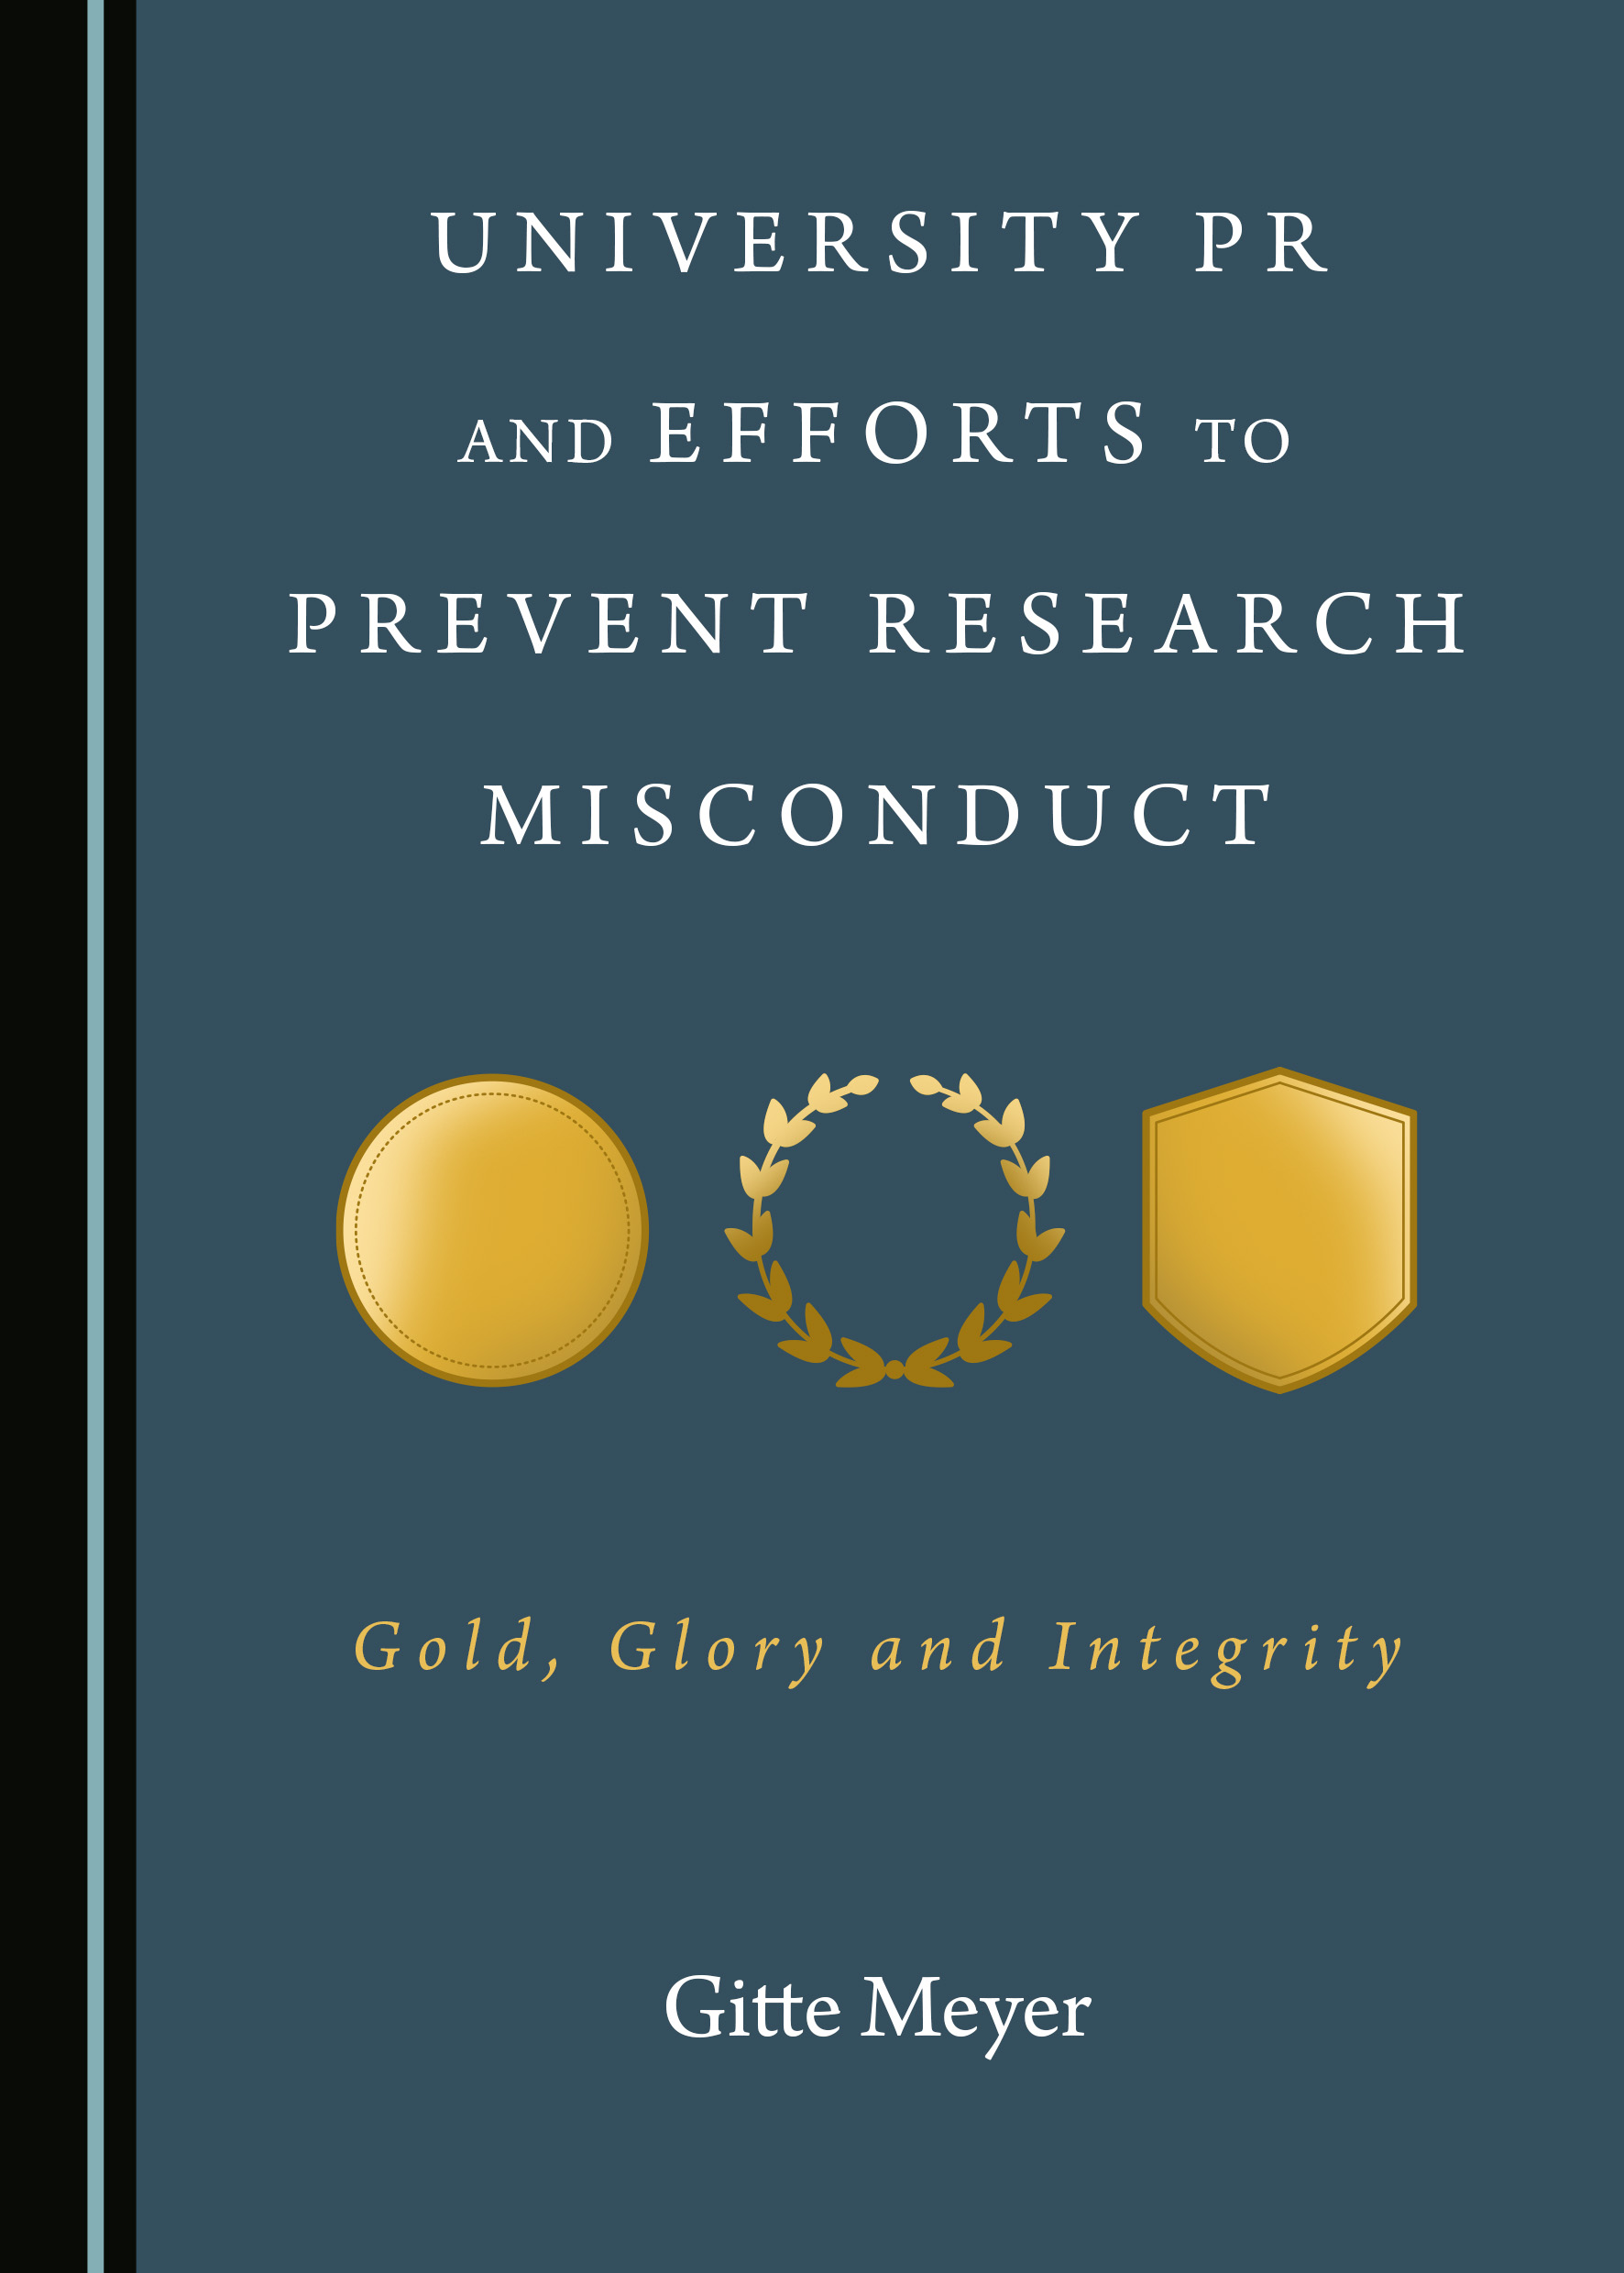 University PR and Efforts to Prevent Research Misconduct: Gold, Glory and Integrity